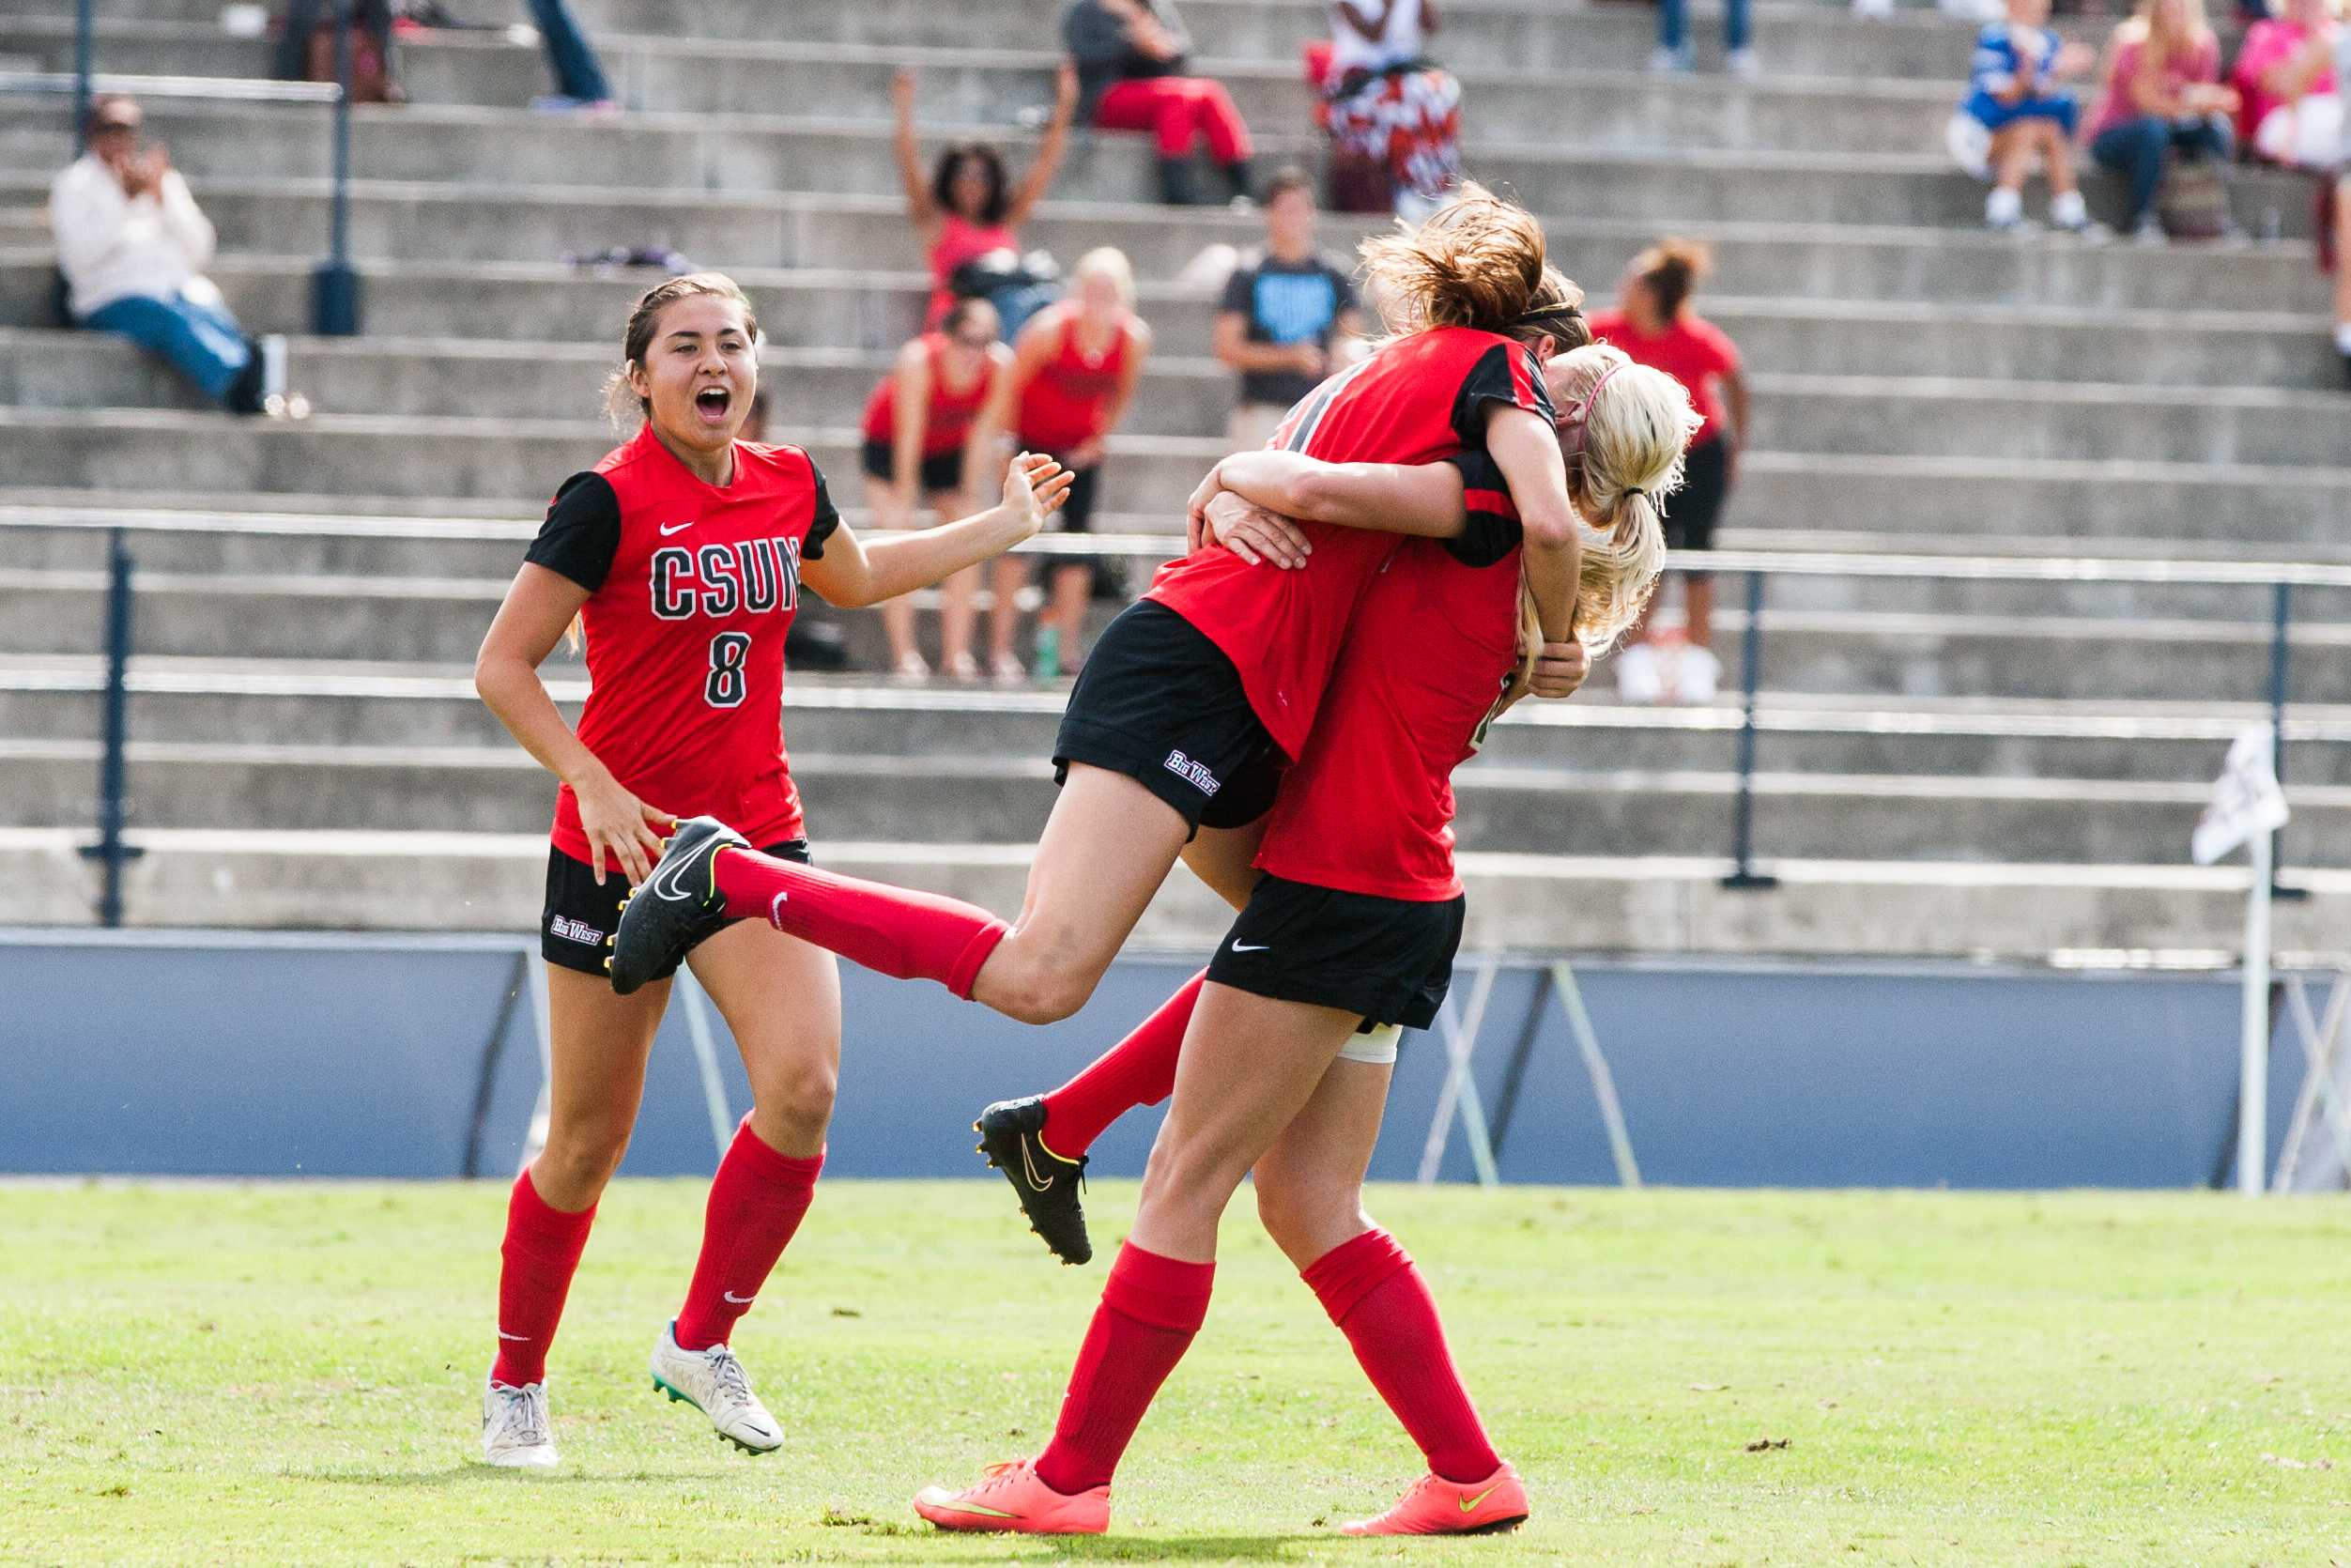 The+Matadors+were+able+to+bounce+back+after+a+loss+in+their+previous+game%2C+due+in+large+part+to+sophomore+forward+Cynthia+Sanchez%27s+late+goals.+Photo+credit%3A+File+Photo%2FThe+Sundial